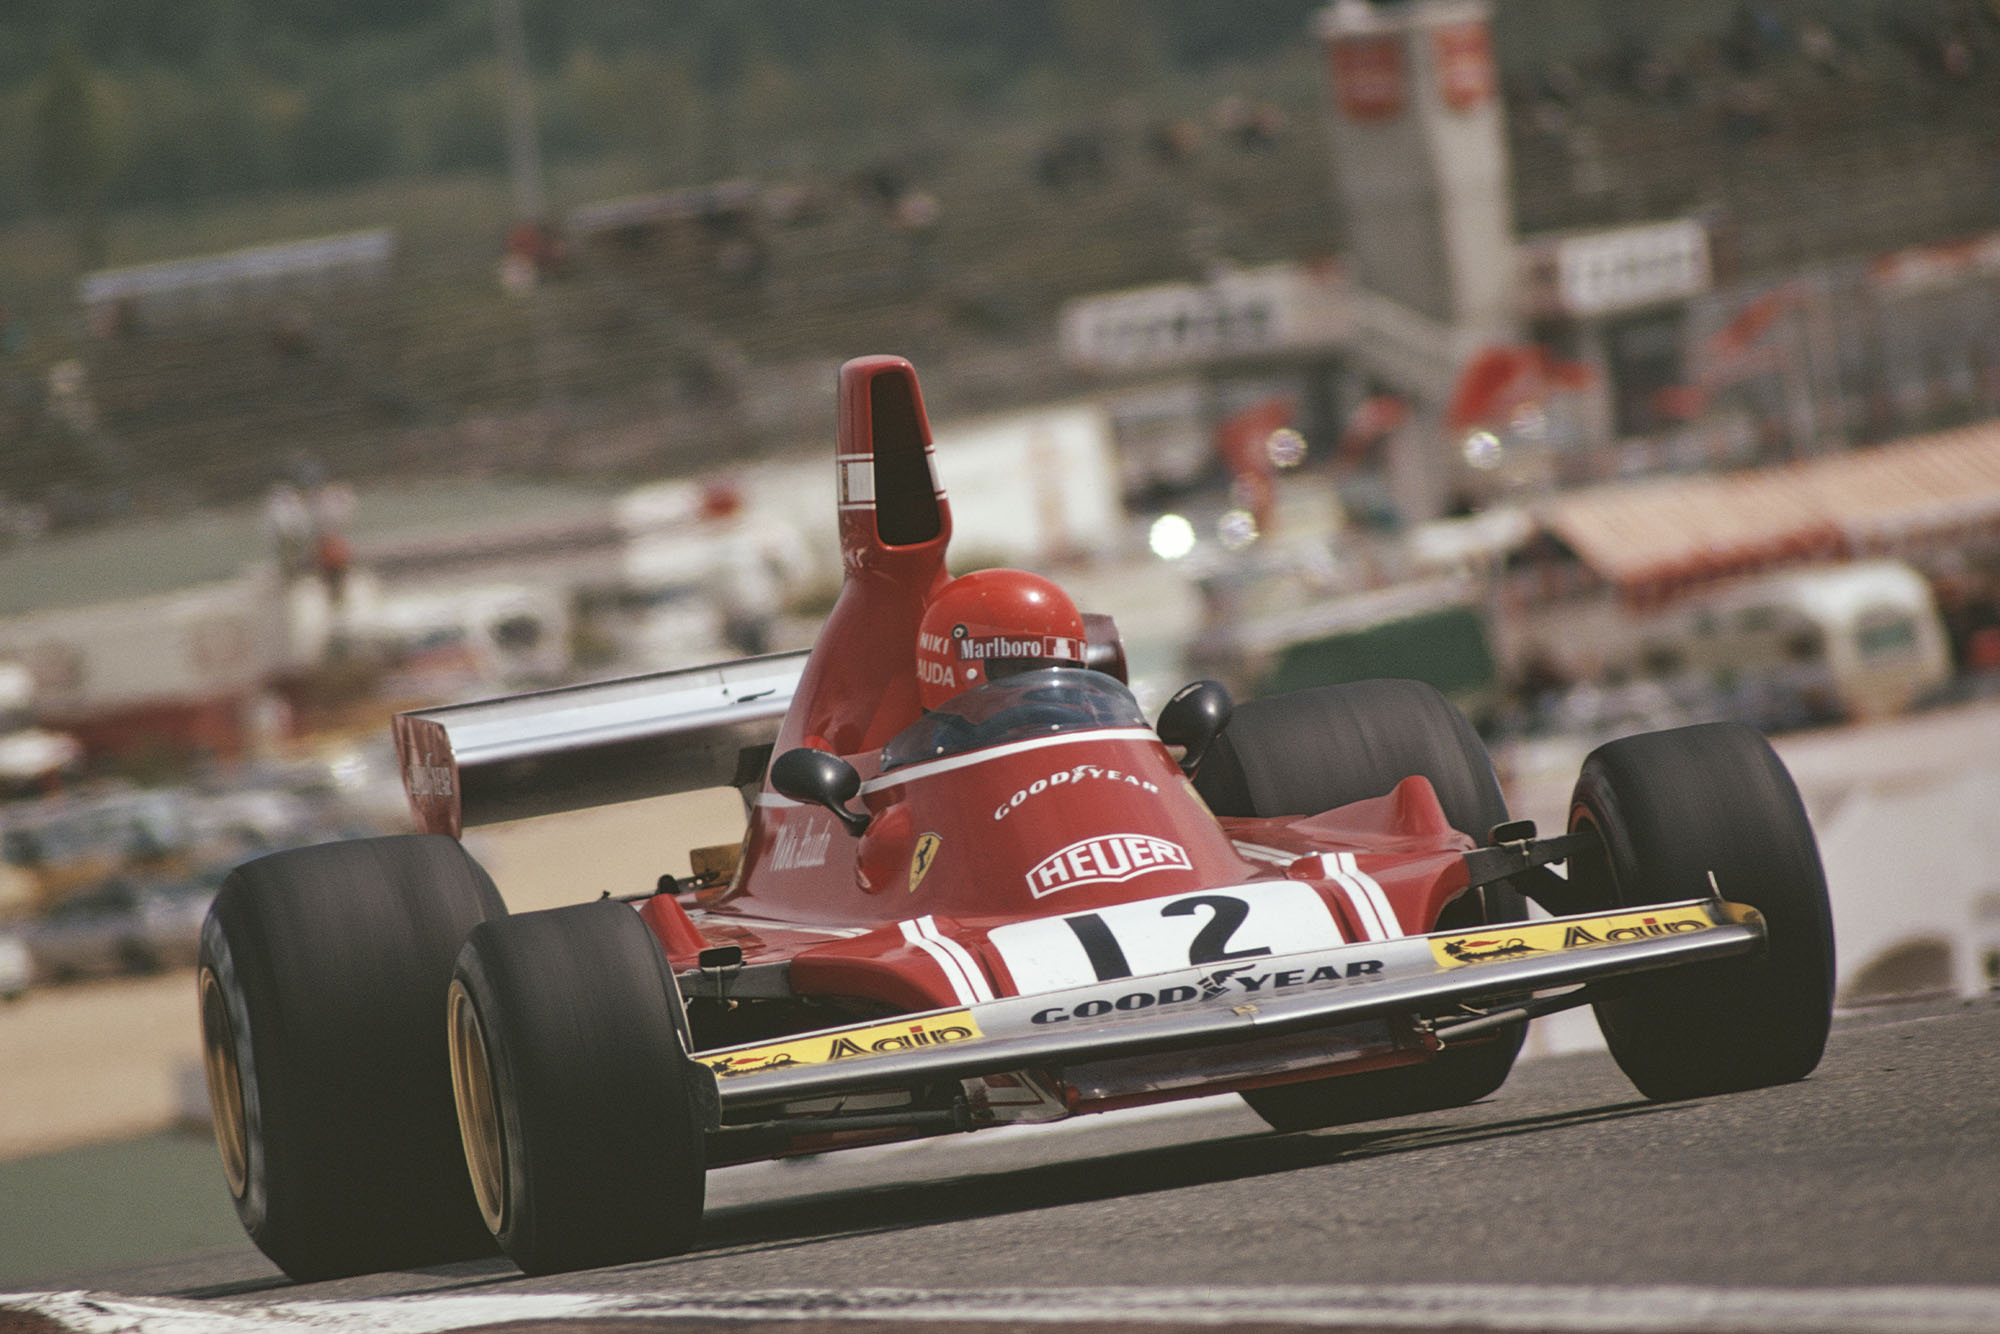 Niki Lauda (Ferrari) at the 1974 Spanish Grand Prix, Jarama.